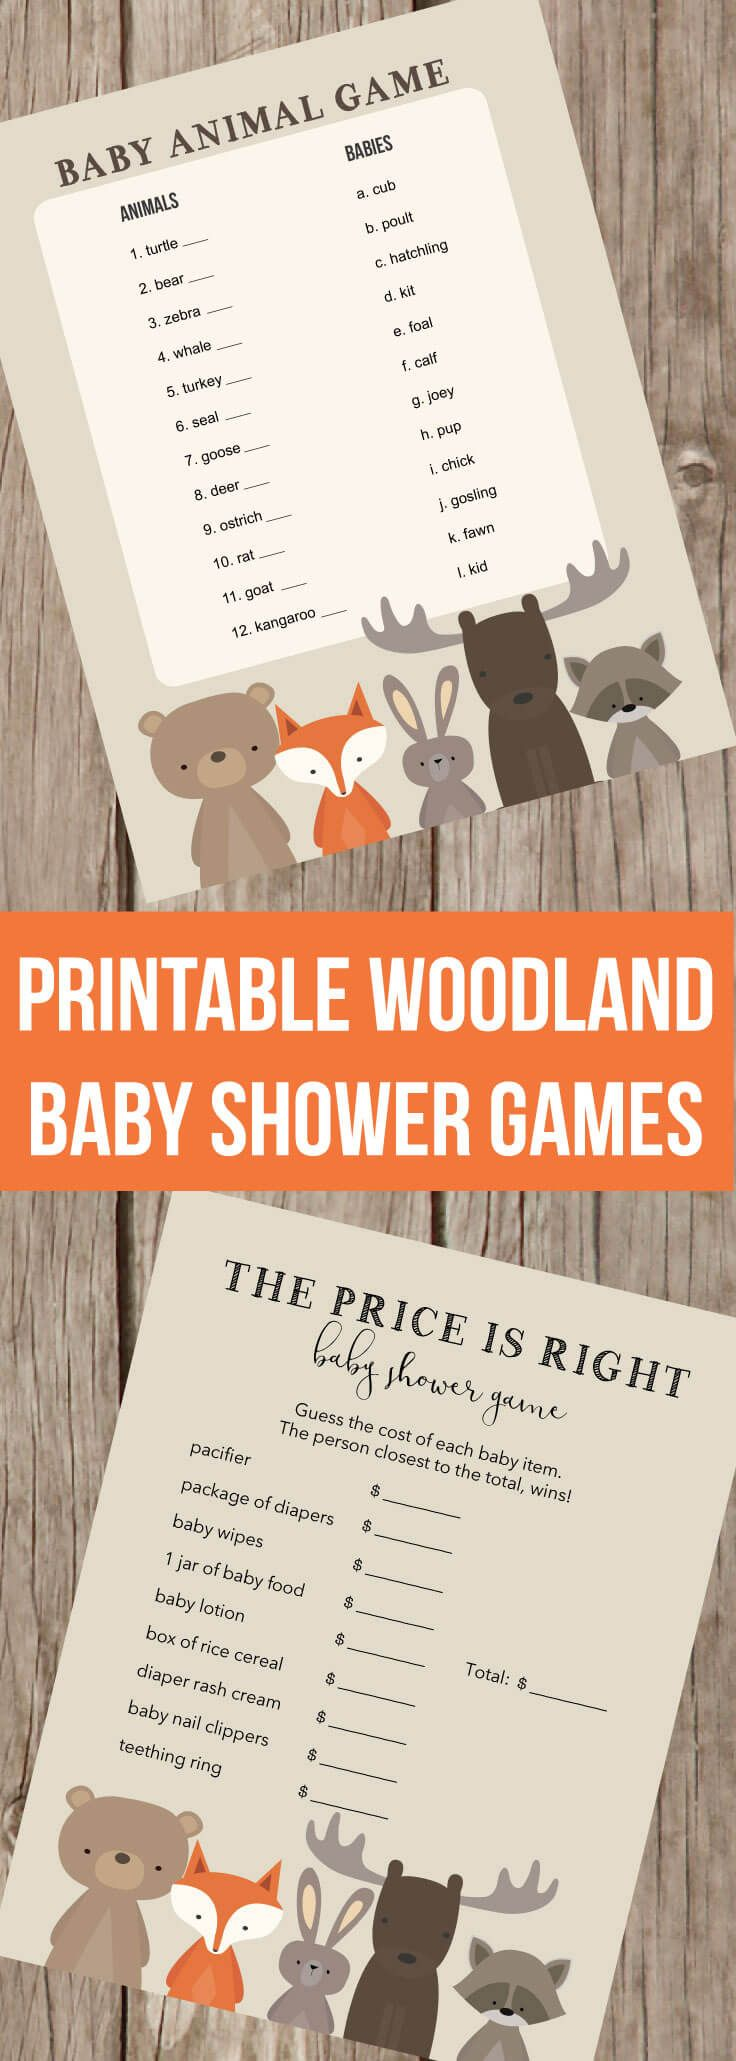 20 Printable Baby Shower Games That Are Fun To Play